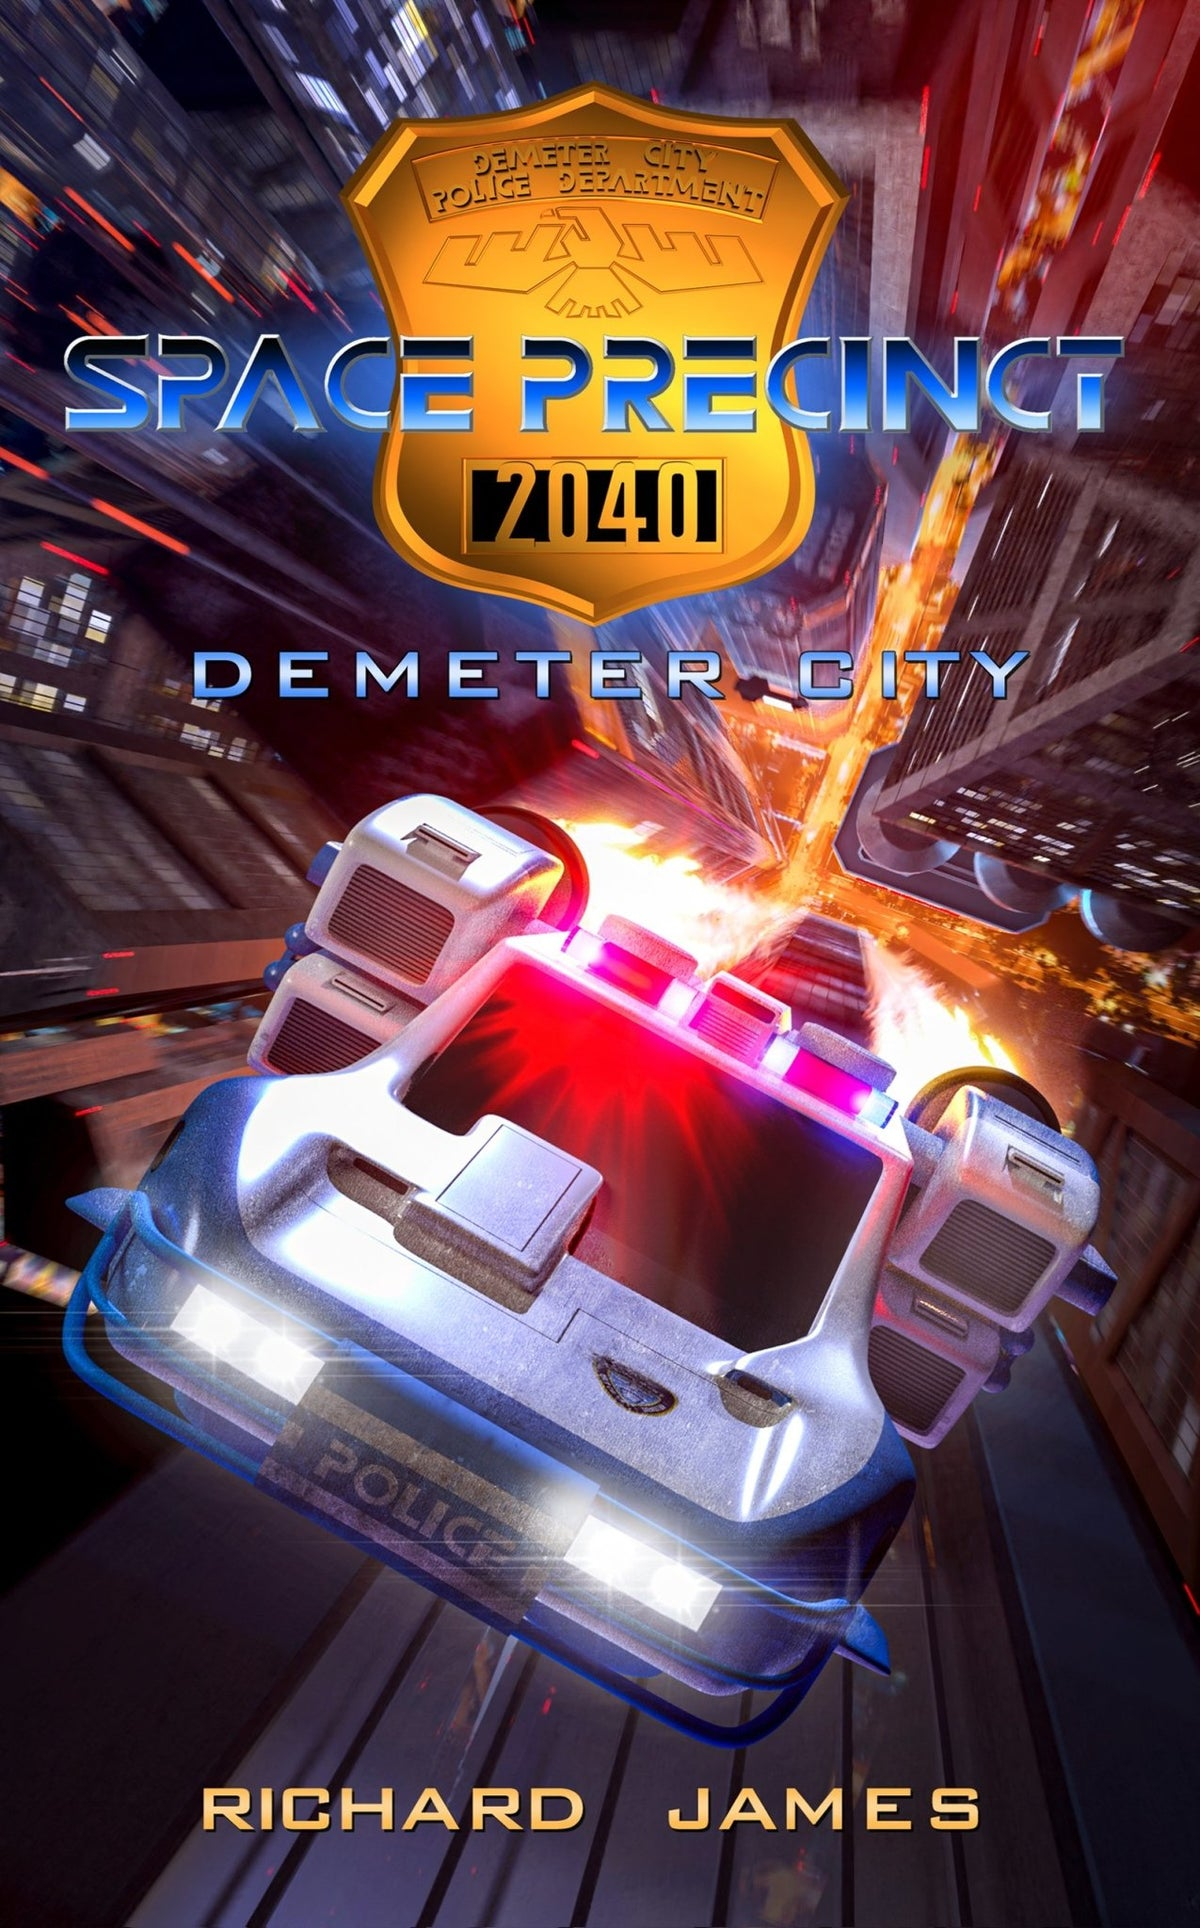 Space Precinct: Demeter City - Paperback - The Gerry Anderson Store